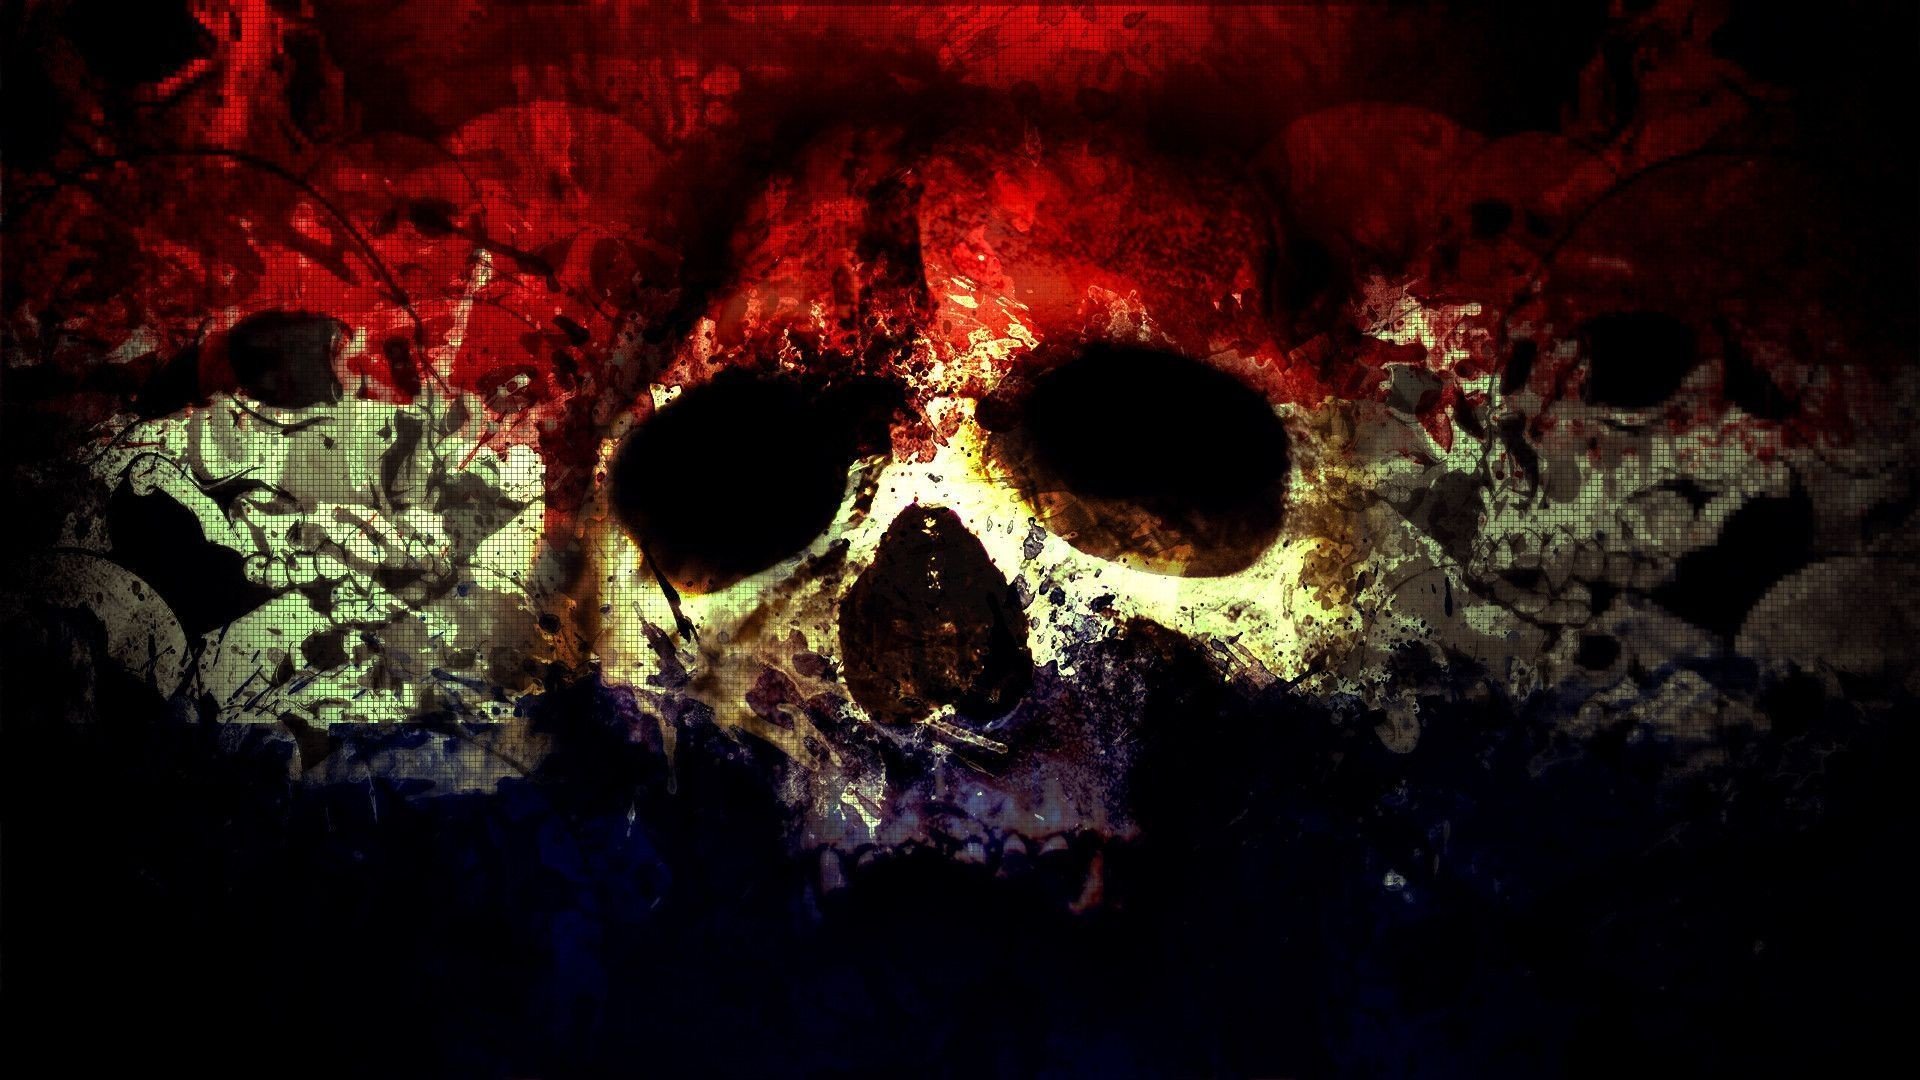 Res: 1920x1080, SKULL WITH BANDANA D and CG Abstract Background Wallpapers on 2560×1440 Red  And Black Skull Wallpapers (44 Wallpapers) | Adorable Wallpapers